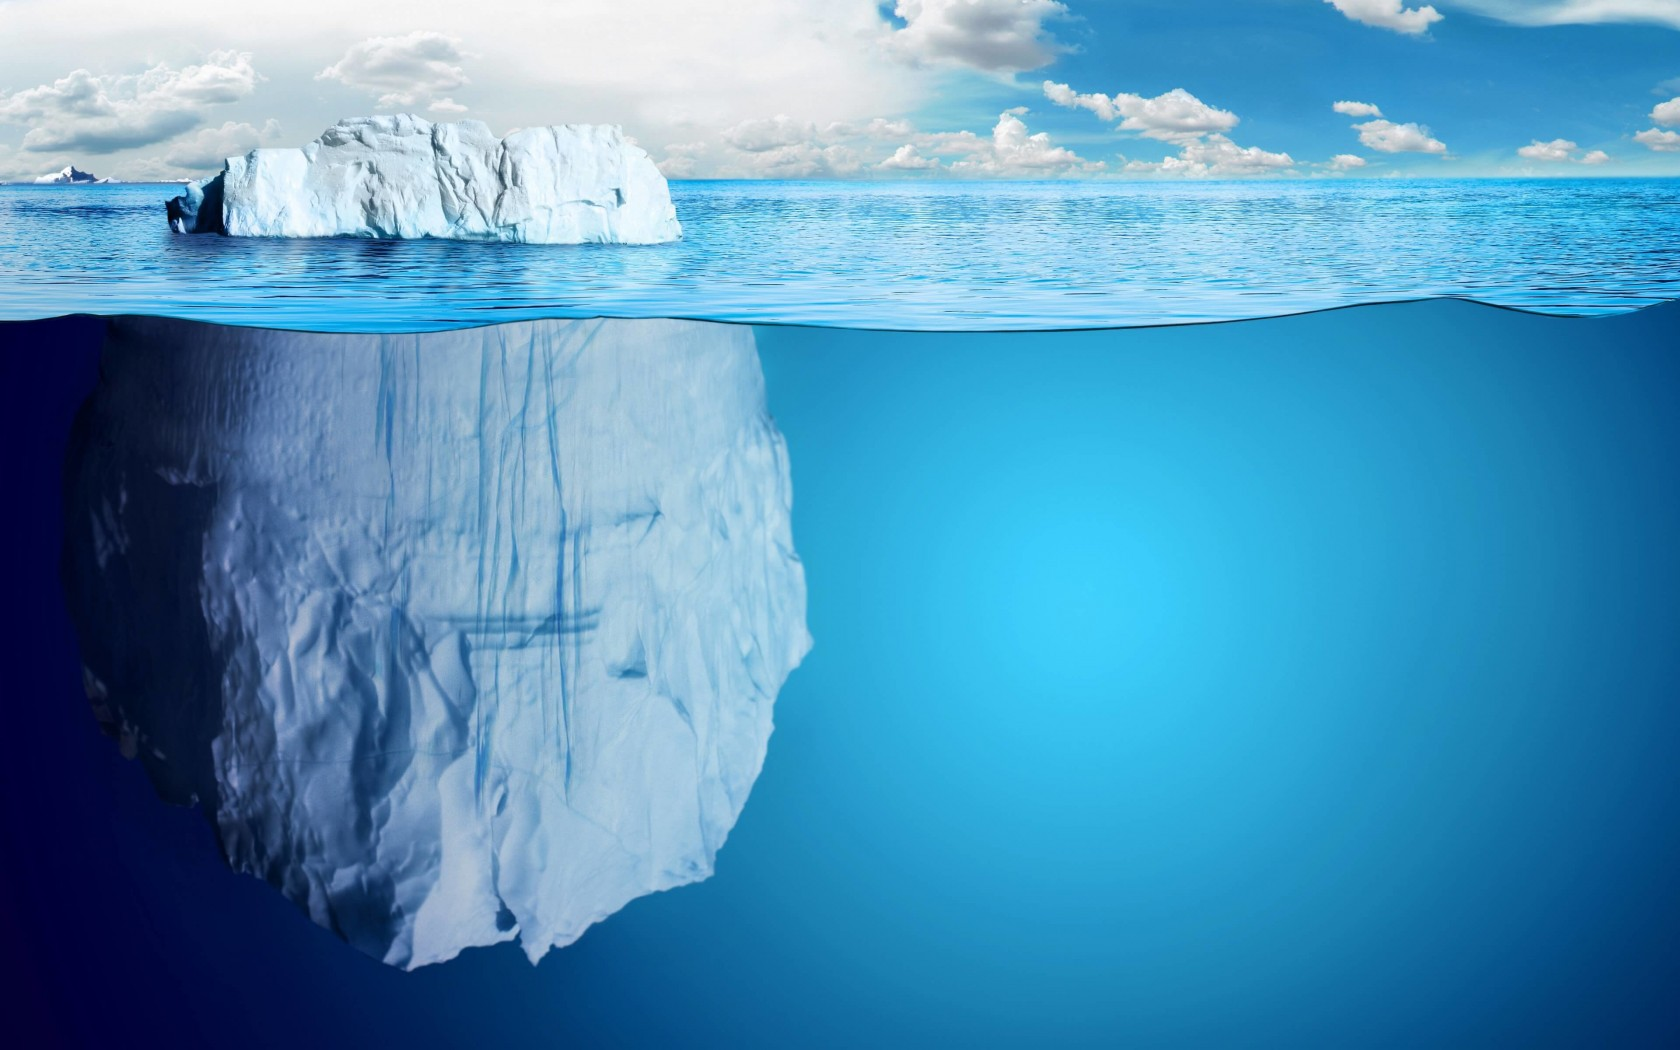 The invisible part of the iceberg Wallpaper for Desktop 1680x1050